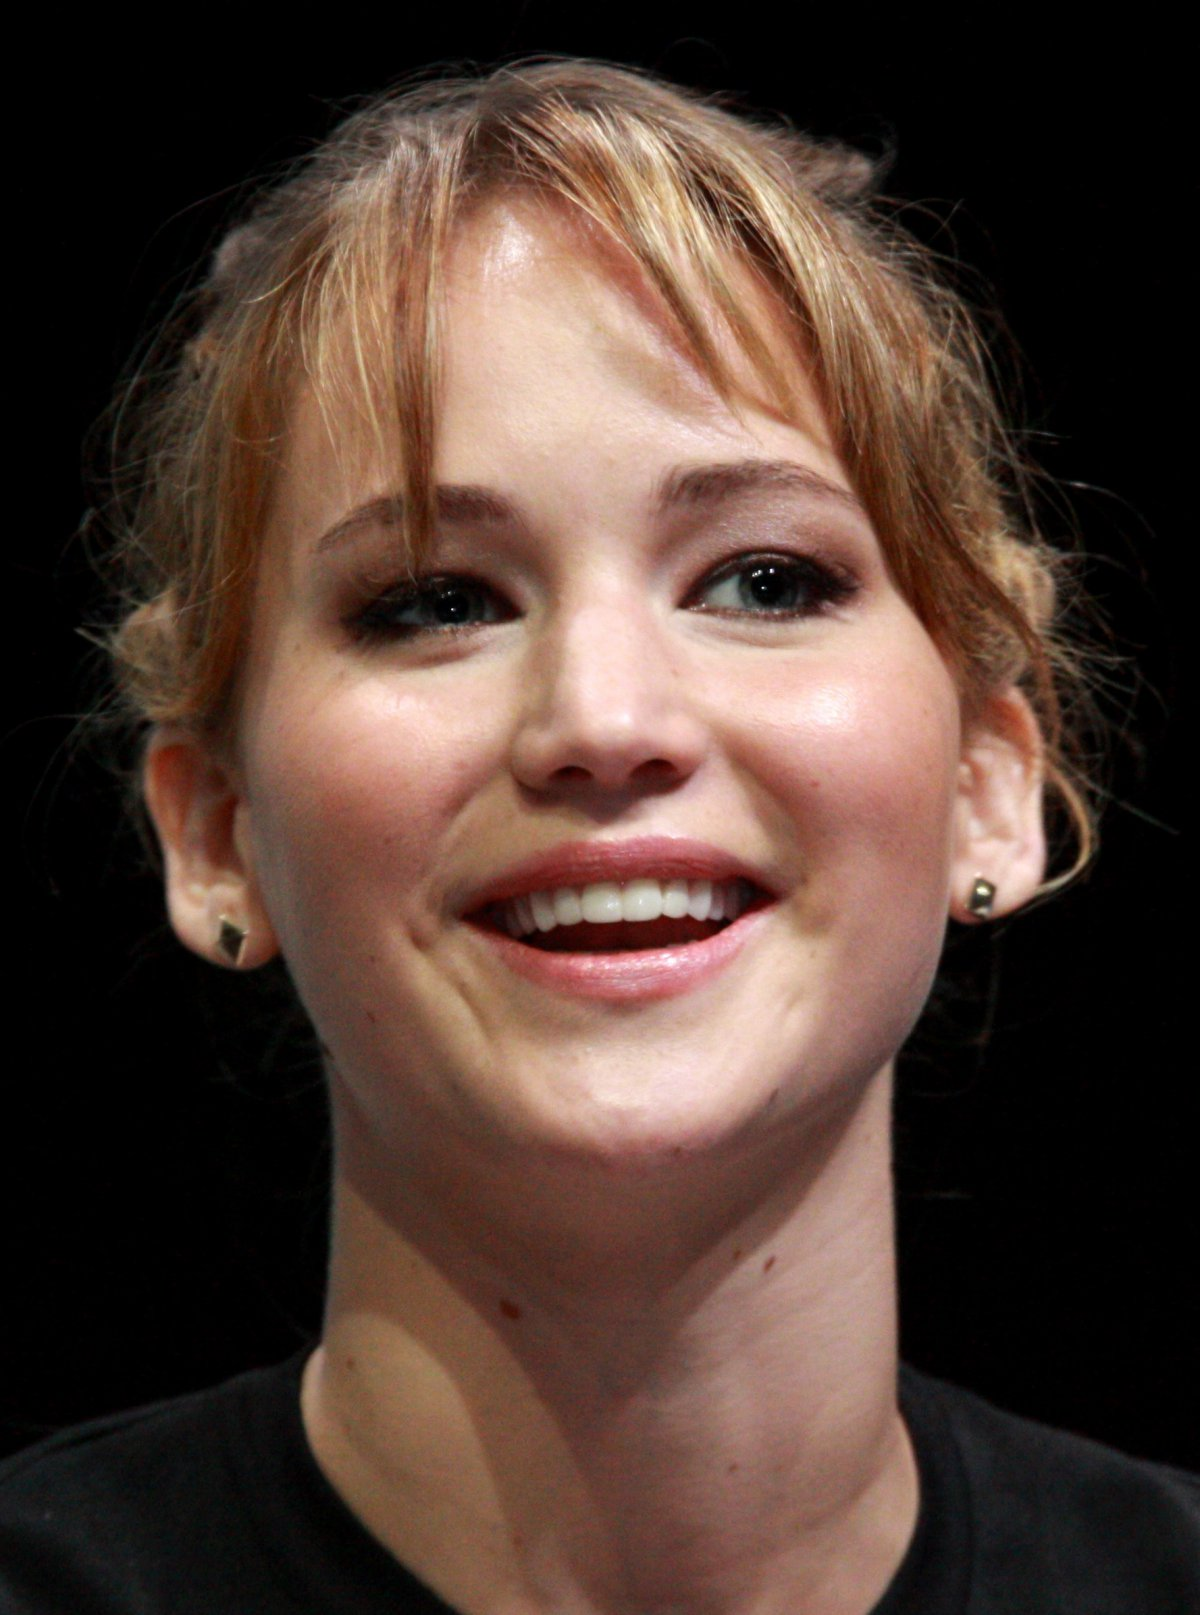 Jennifer Lawrence Gets A Facial After Sex